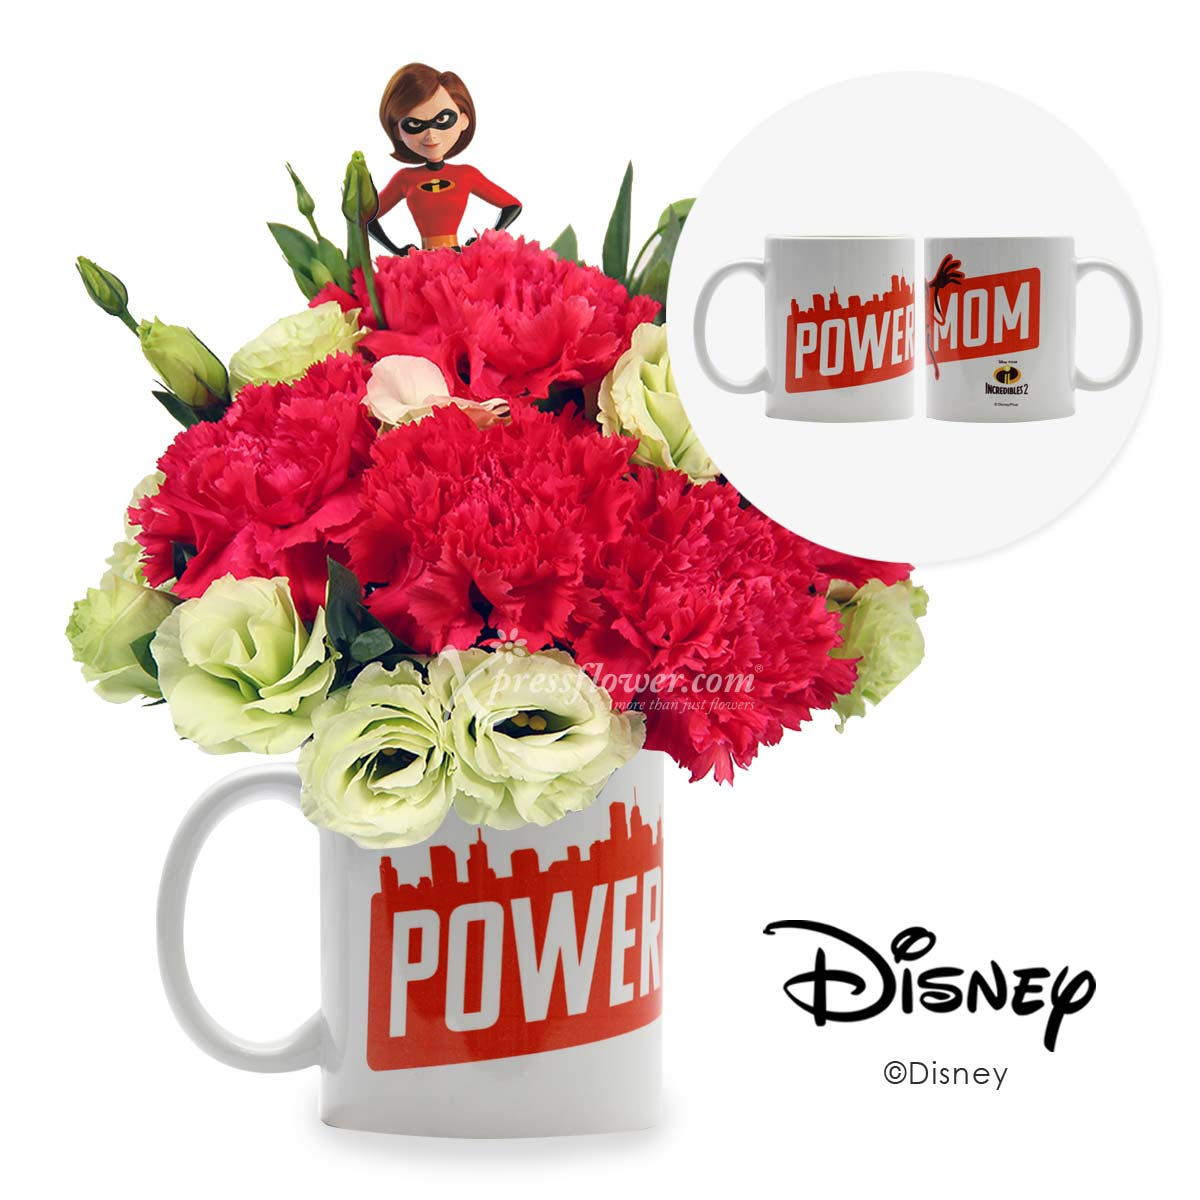 Power Mom (6 shocking pink carnations with Disney cup)